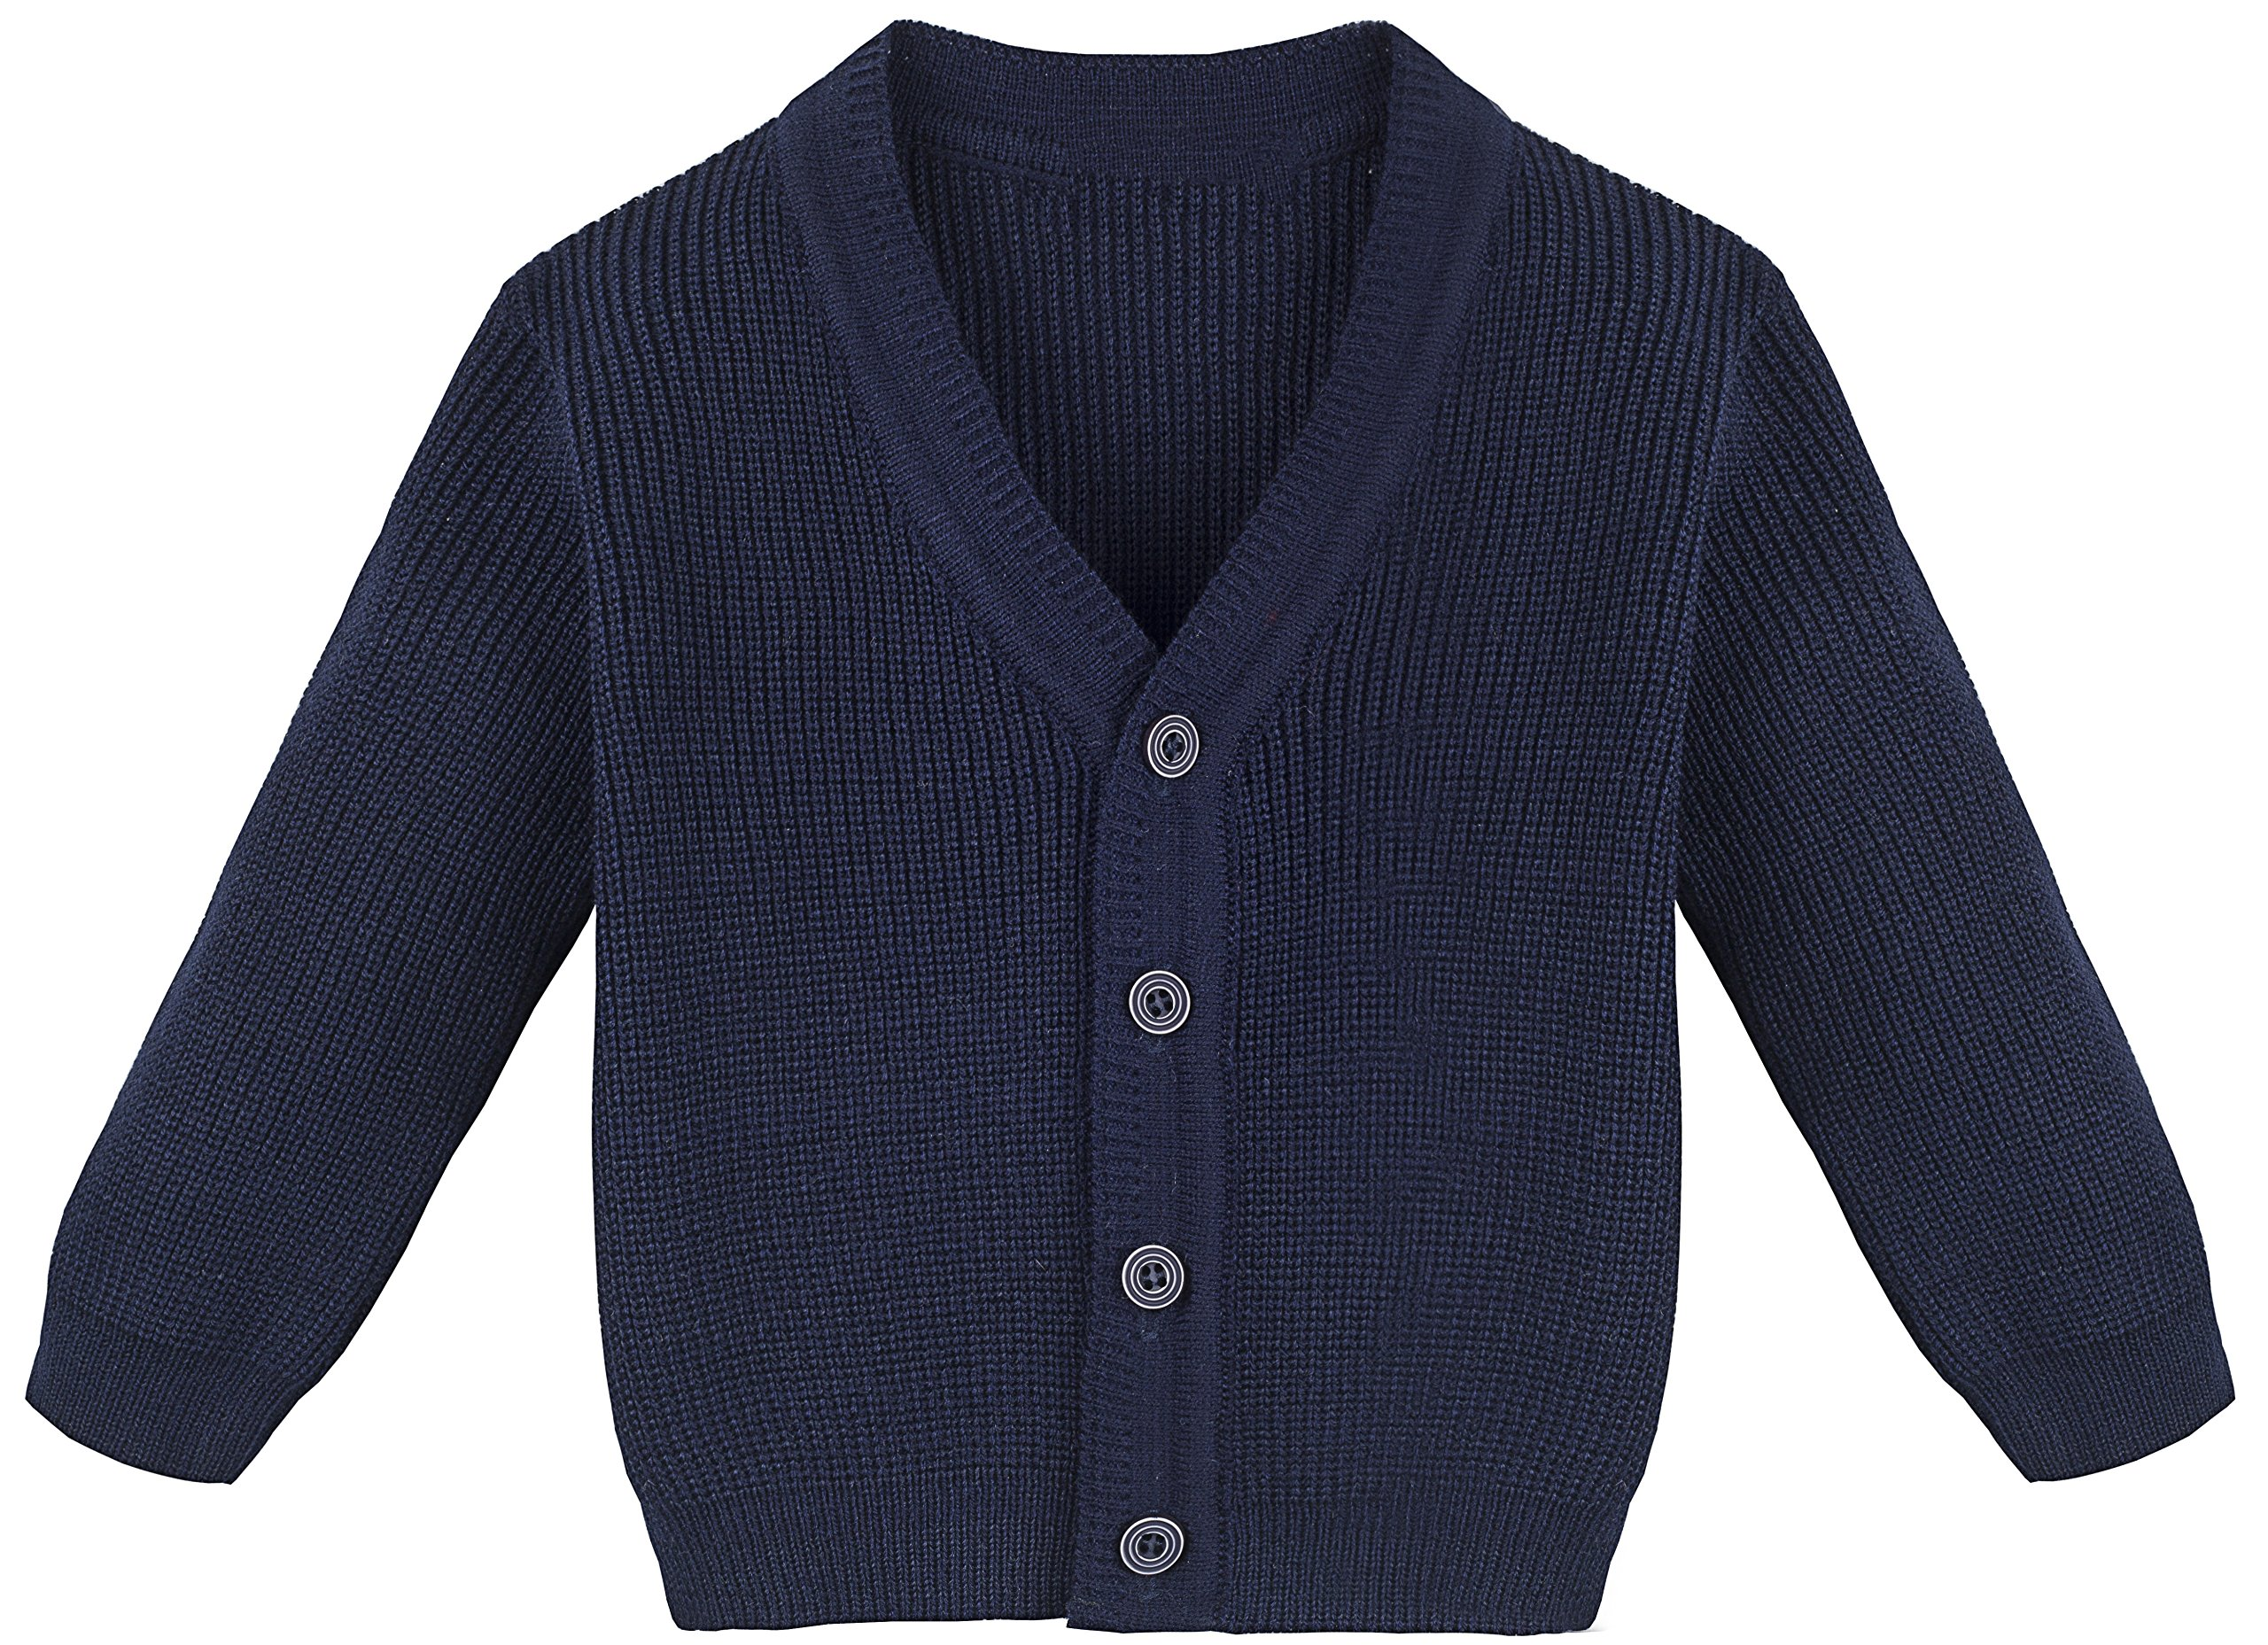 Lilax Little Boys Basic Long Sleeve V-Neck Classic Knit Cardigan Sweater 2T Navy